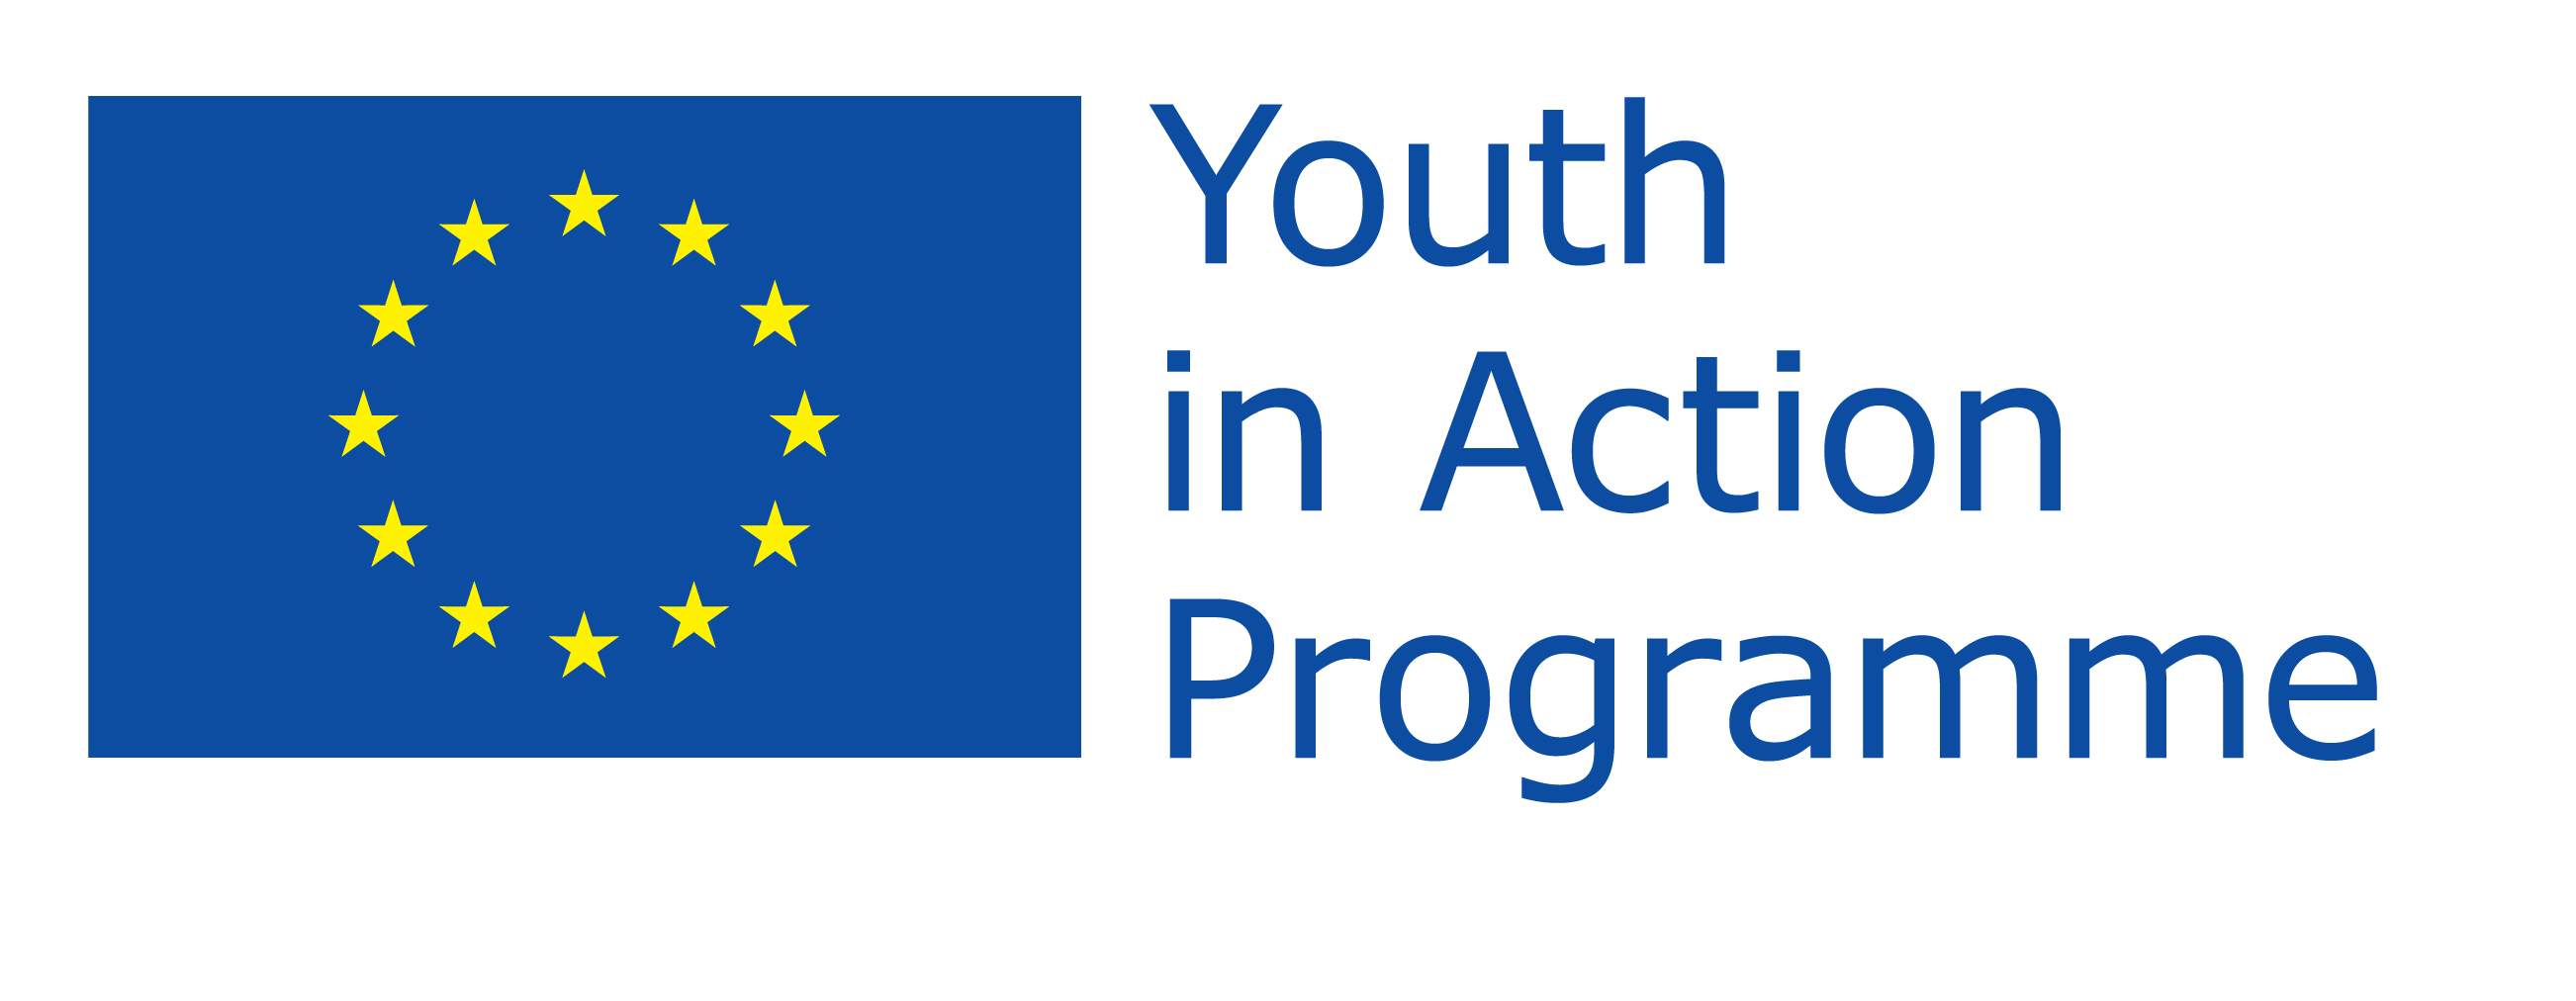 youth in action programm